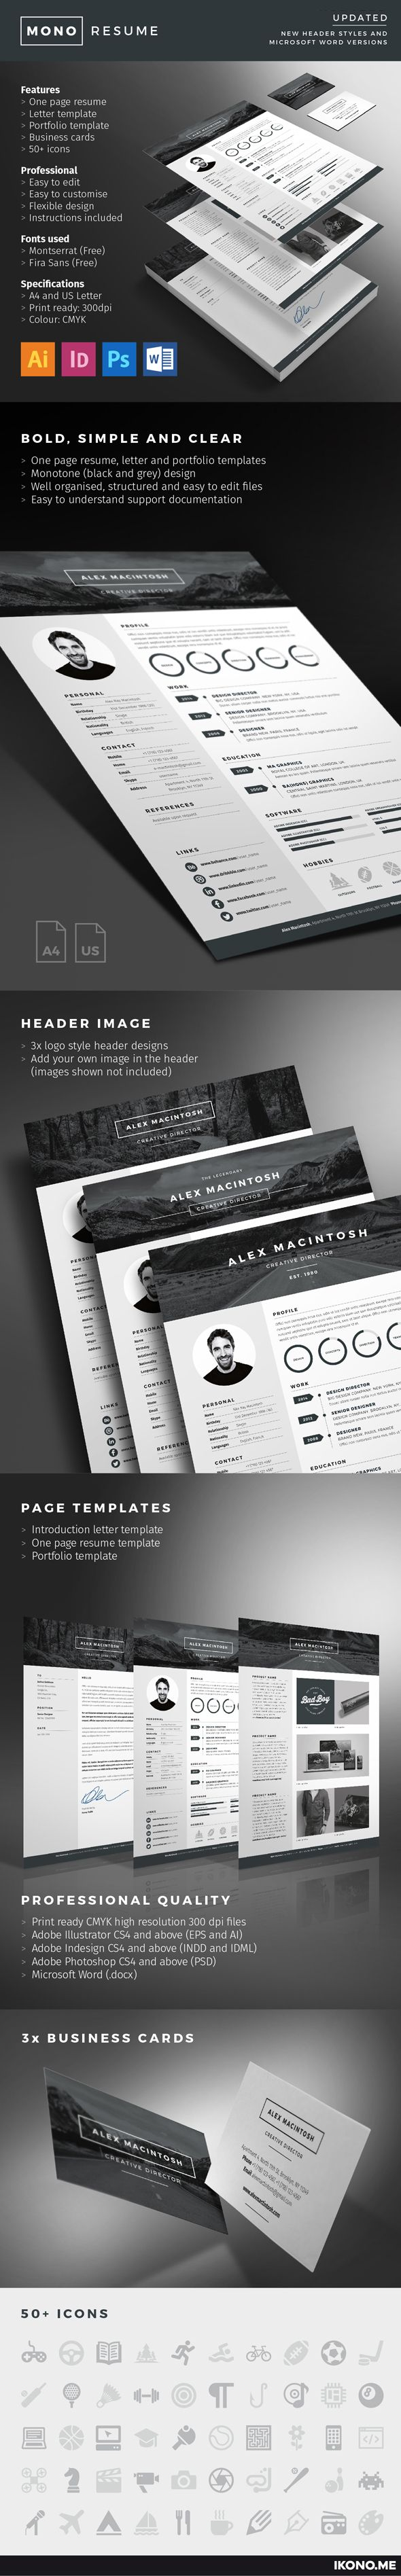 67 best Resume Templates images on Pinterest | Resume templates ...